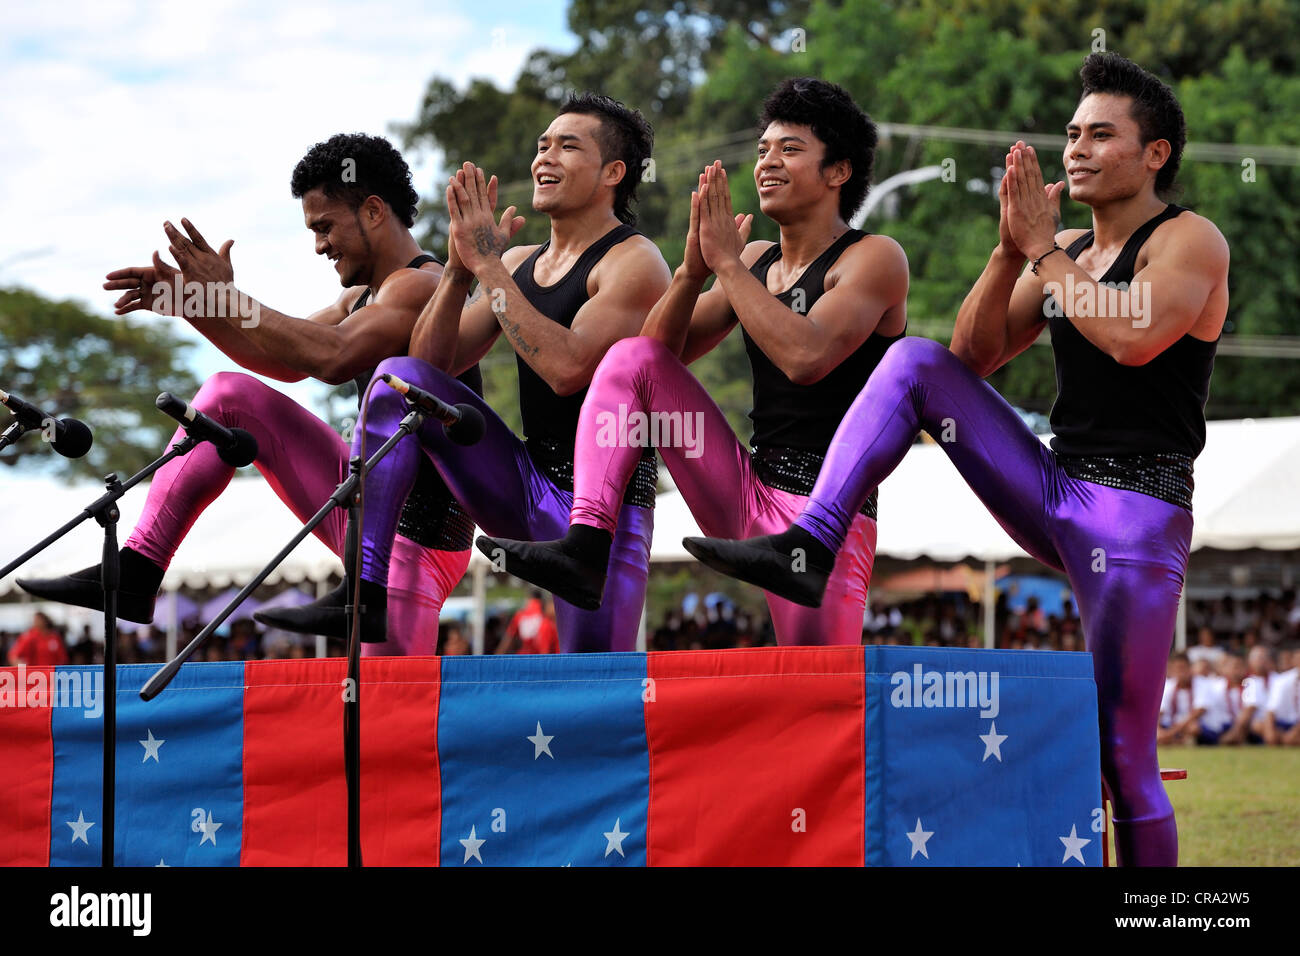 One of the cultural performances at celebrations of Samoa's 50 years of independence - Stock Image